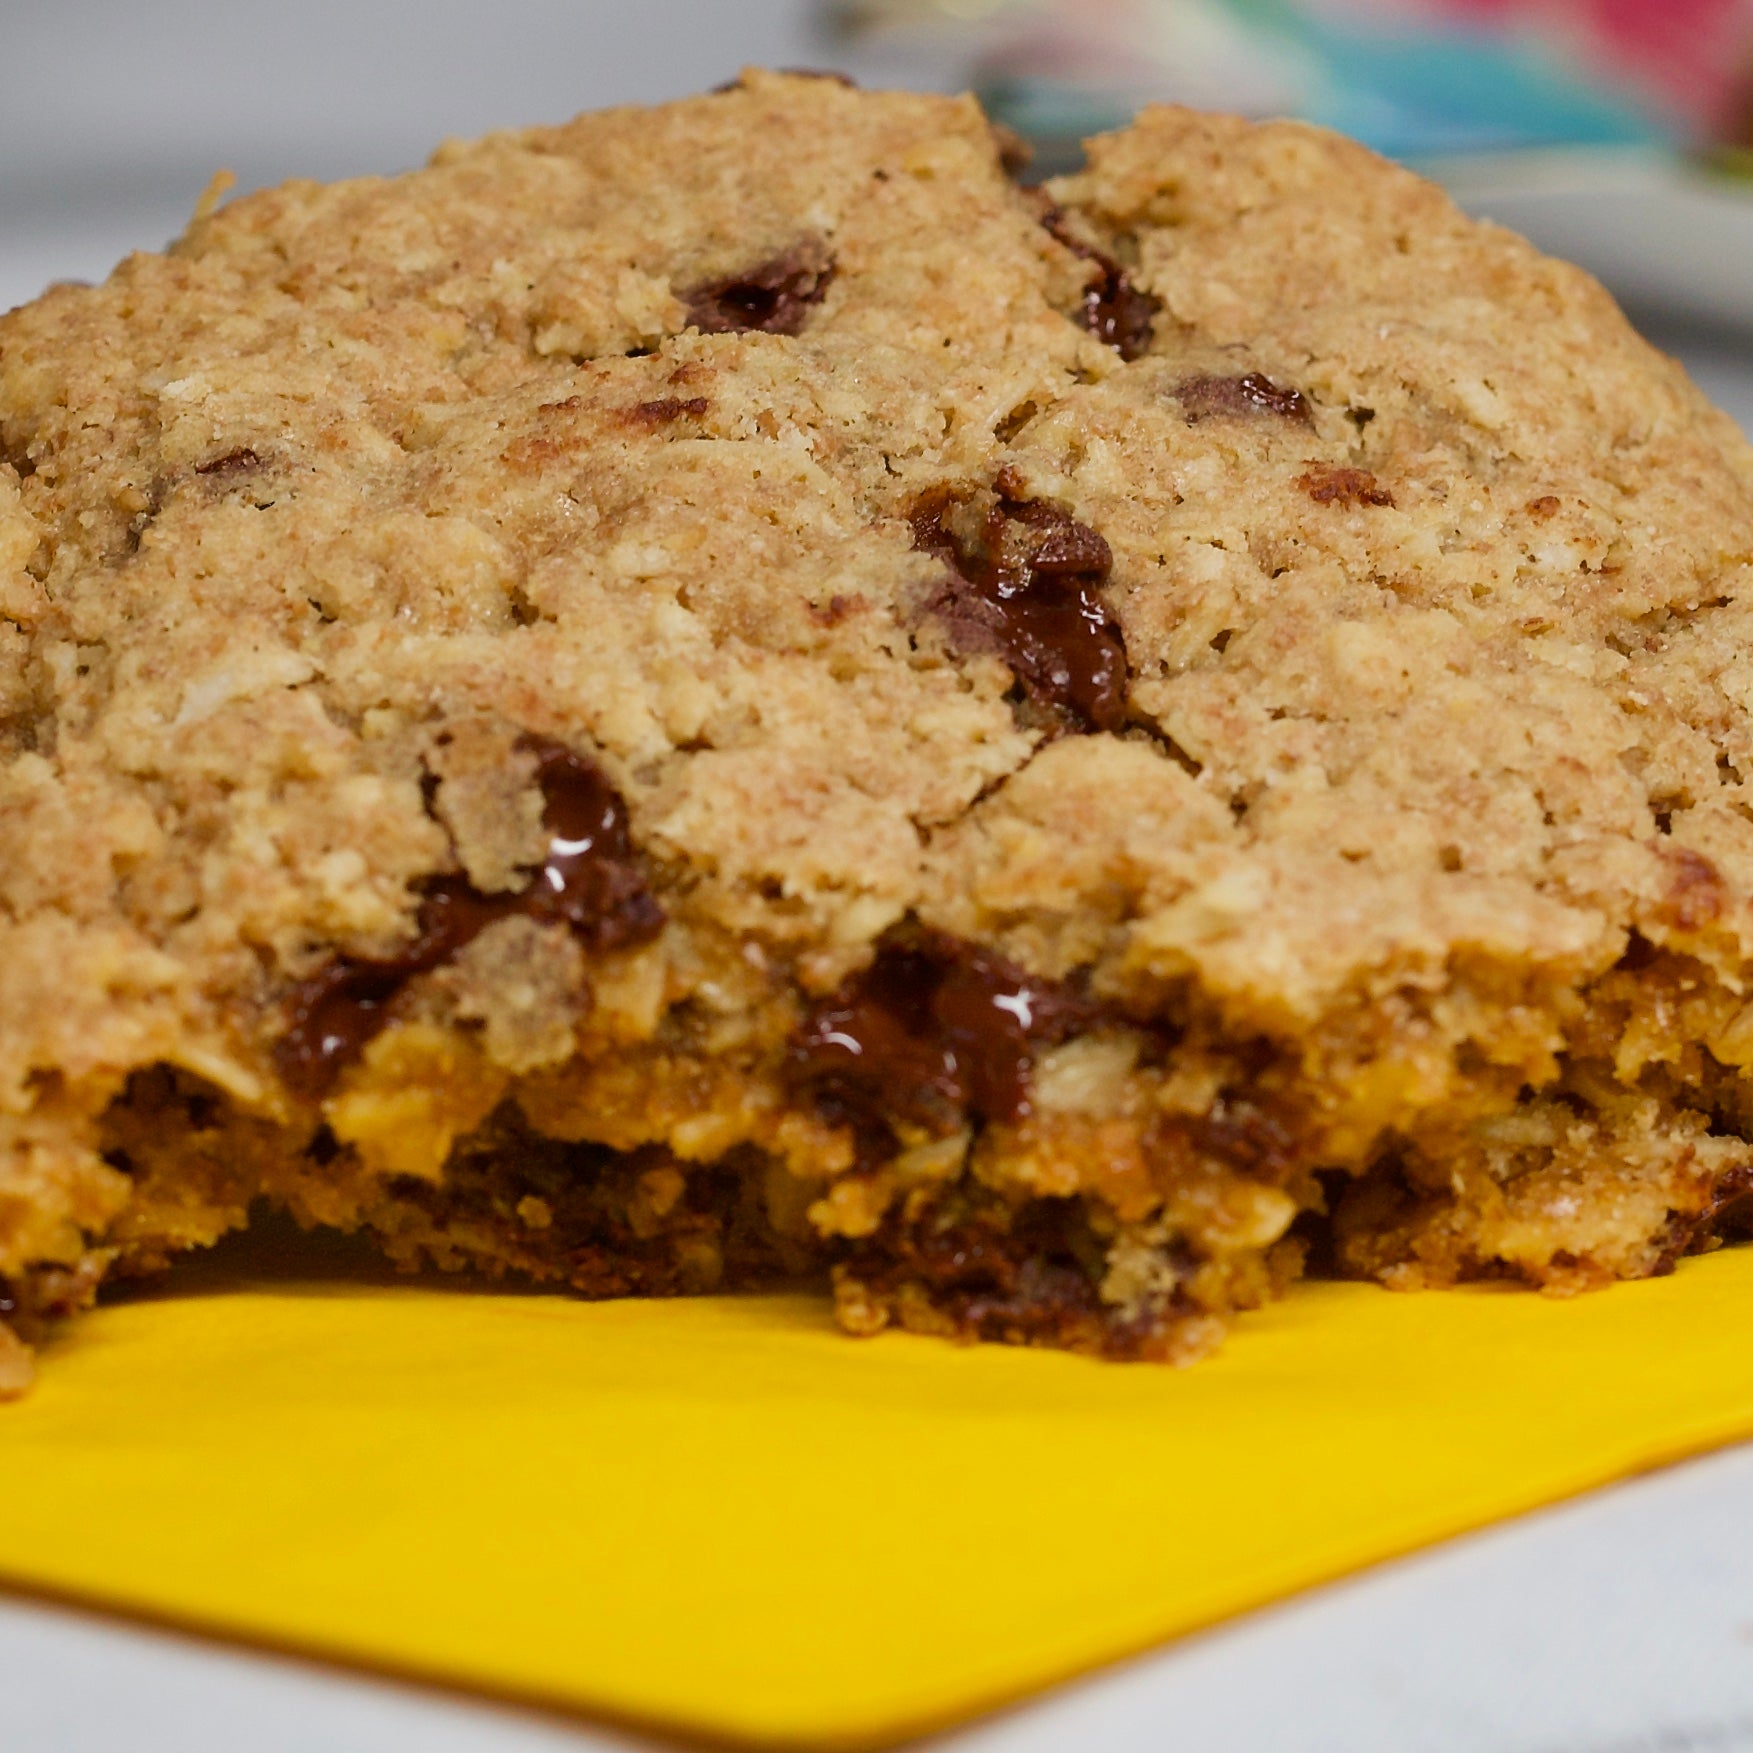 What's in a Big Sky Chocolate Chip Cookie?